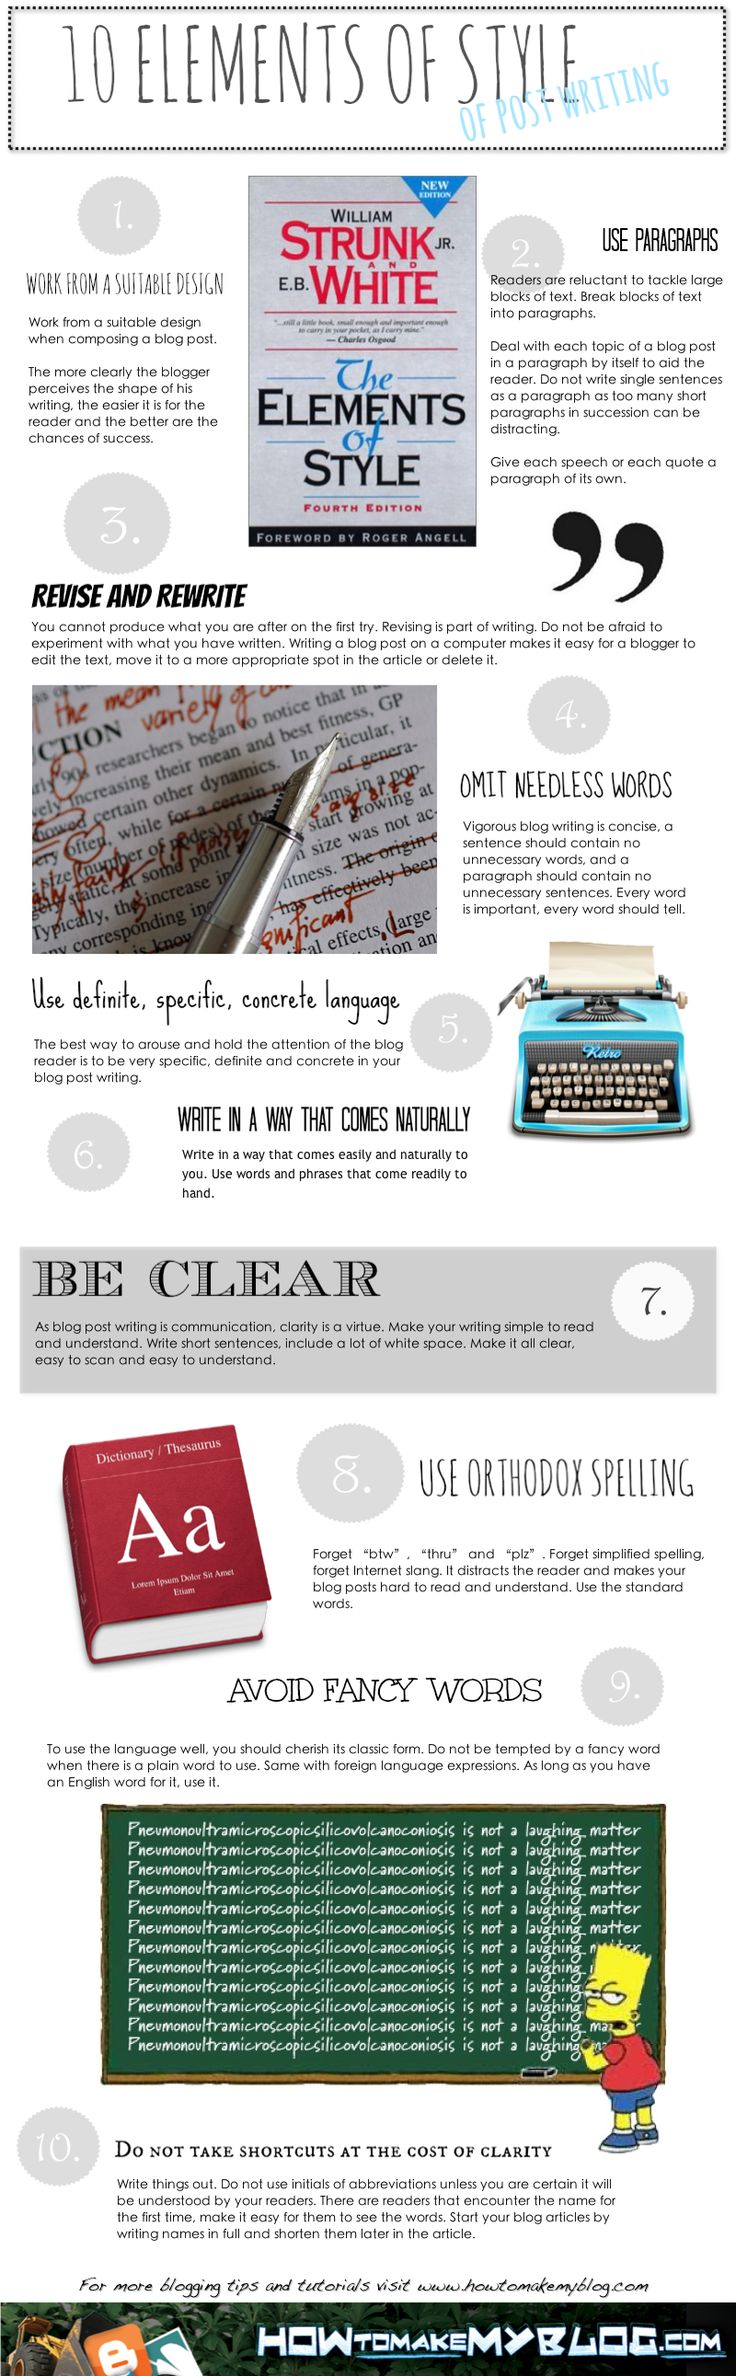 different types of writing styles Google Search More Pinterest